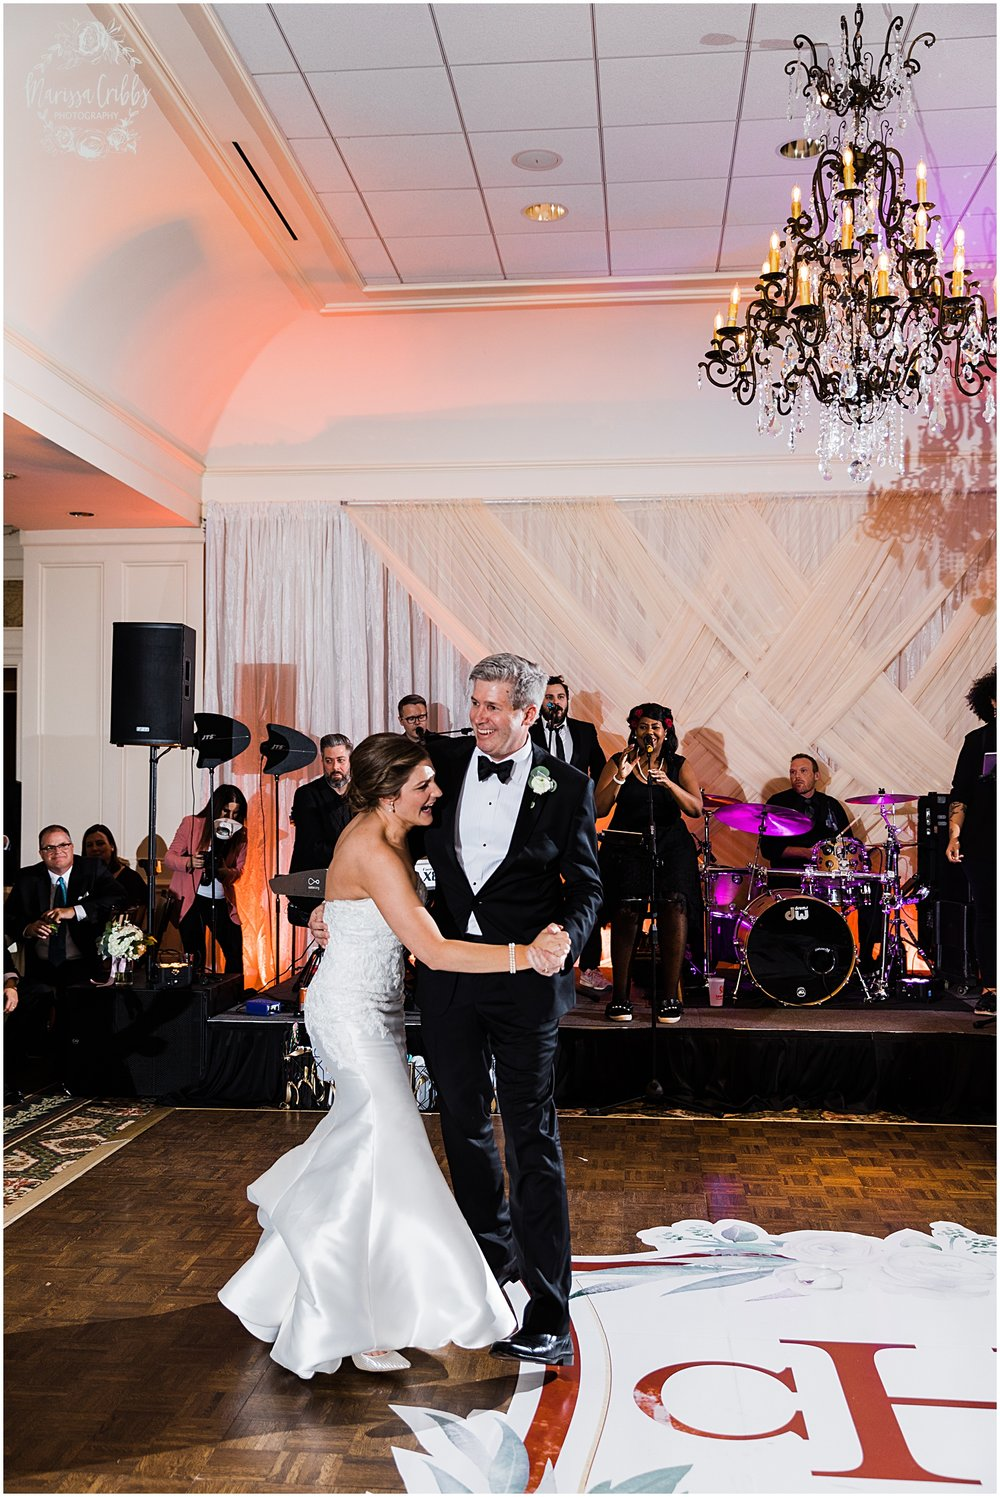 JOE & CAROLINE MARRIED | INDIAN HILLS COUNTRY CLUB | MARISSA CRIBBS PHOTOGRAPHY_7290.jpg